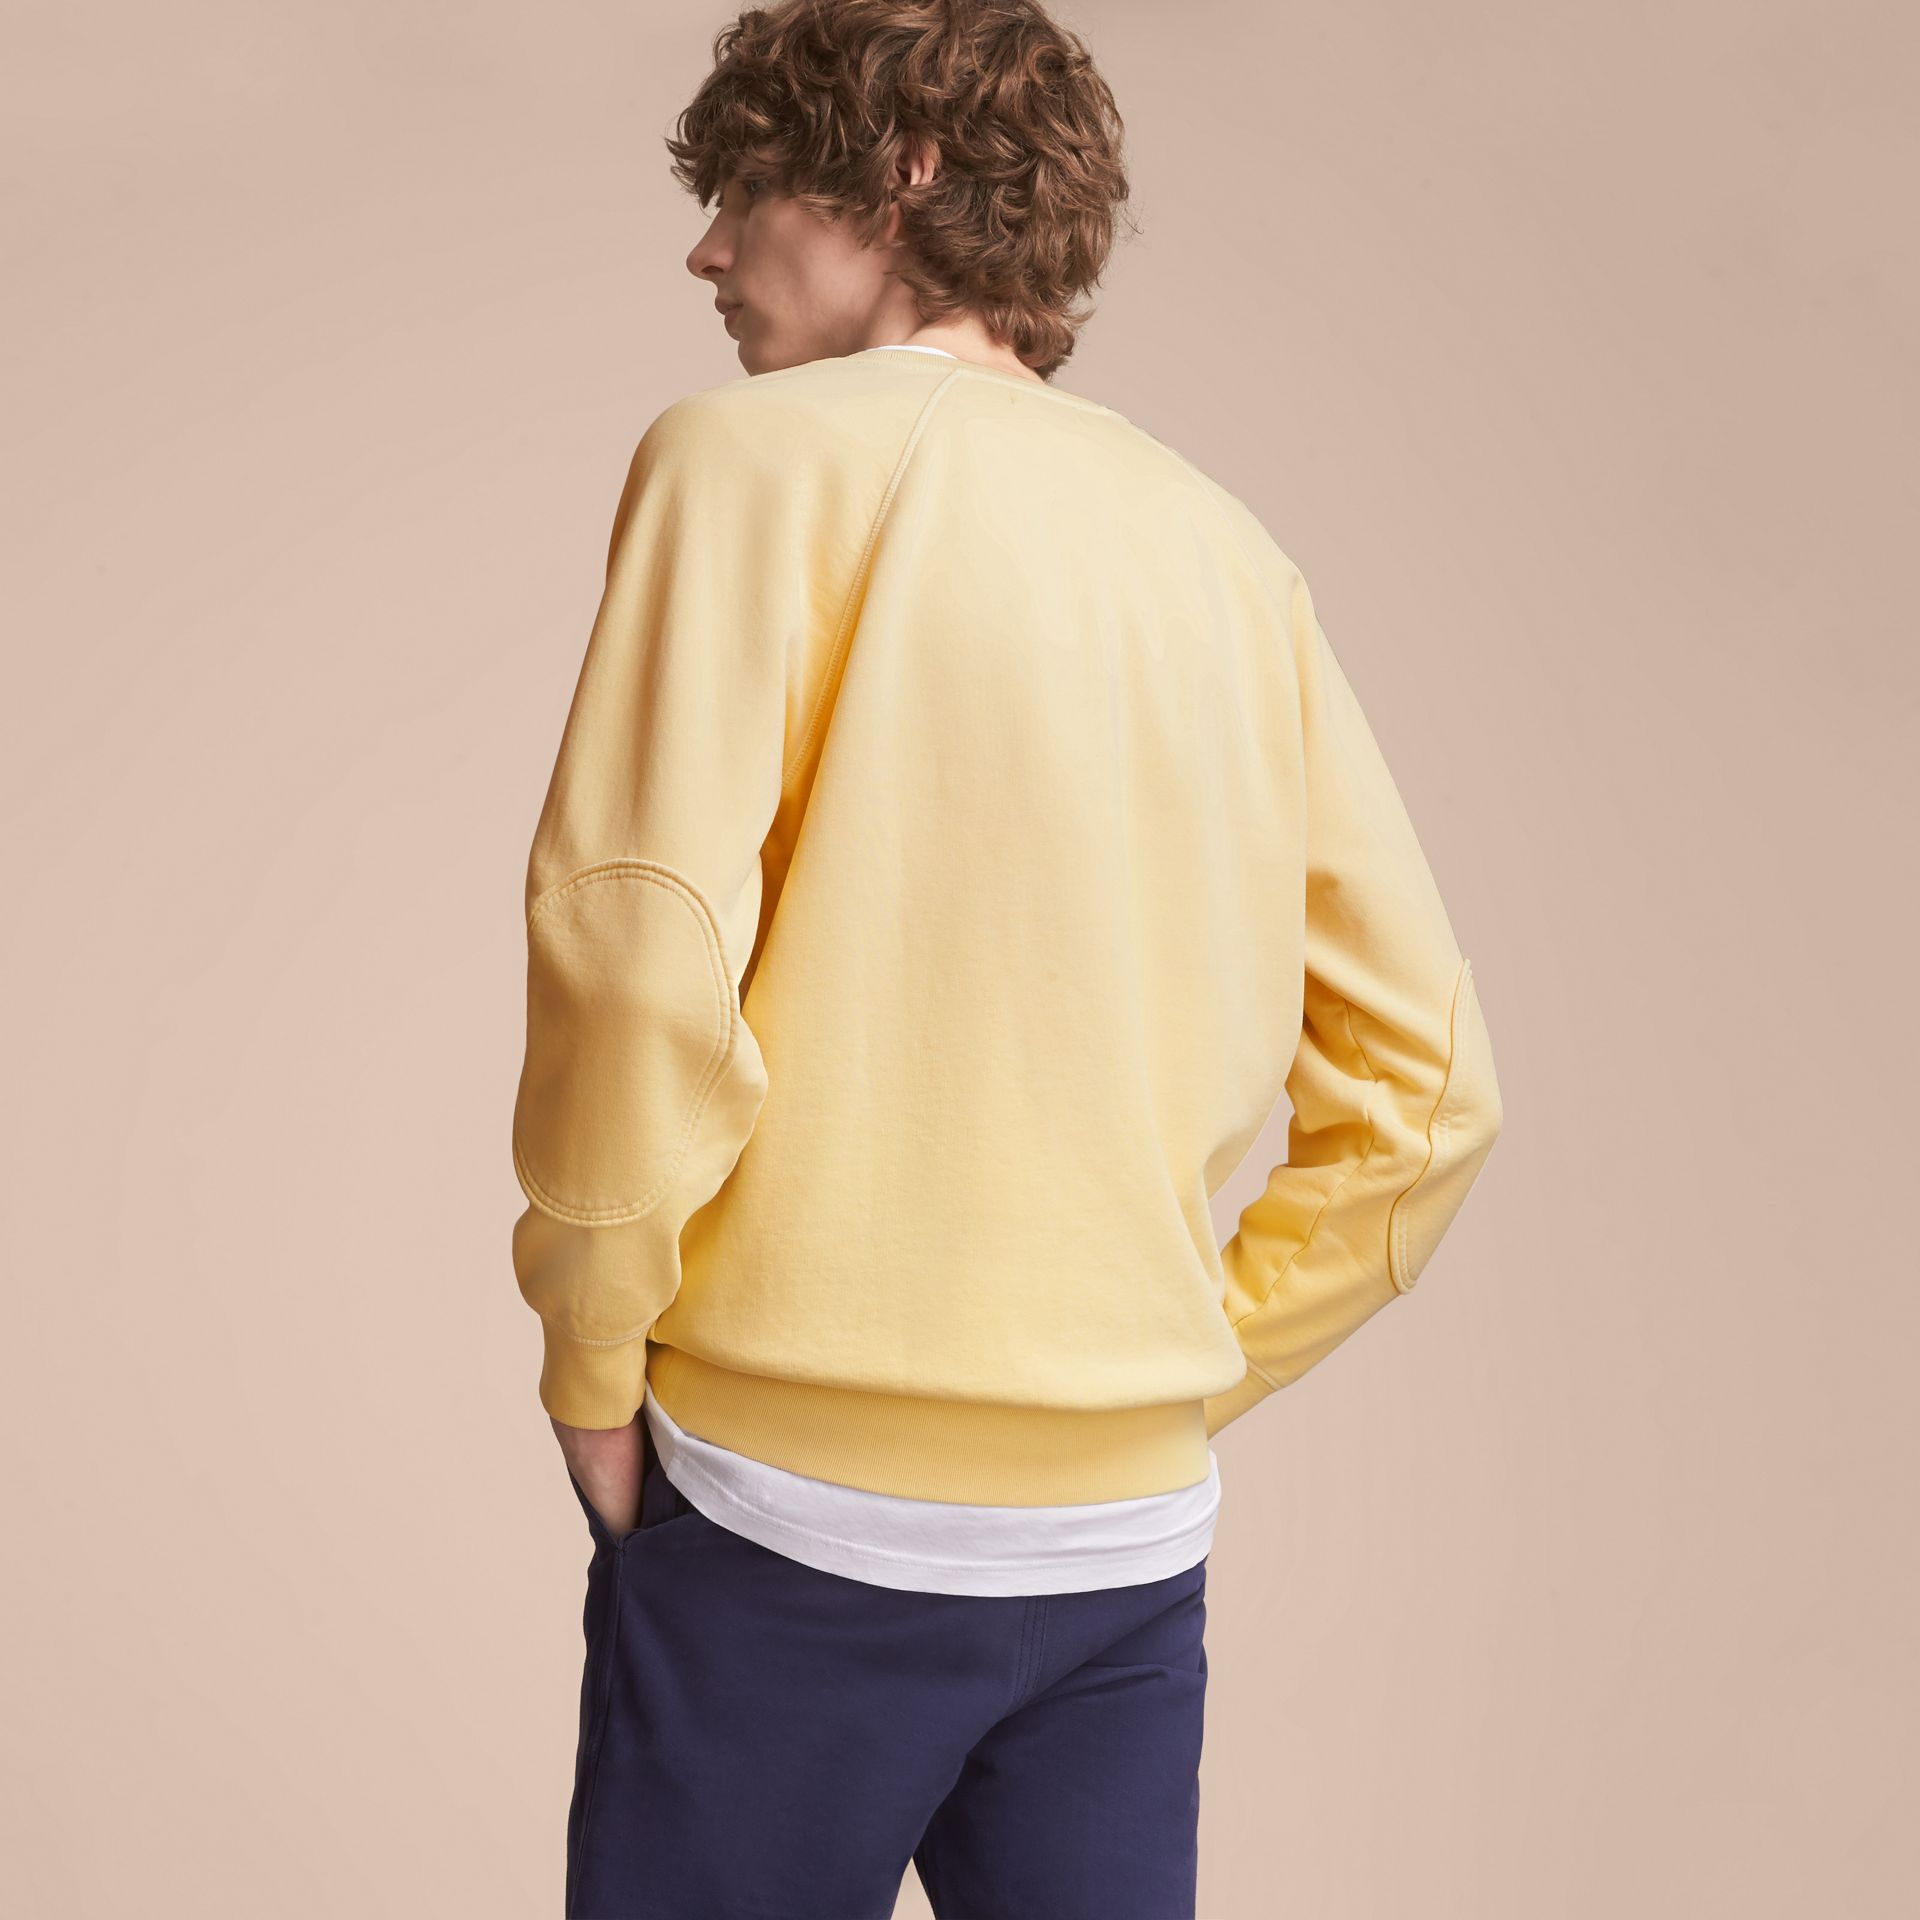 Unisex Pigment-dyed Cotton Oversize Sweatshirt in Pale Yellow - Men | Burberry Hong Kong - gallery image 3